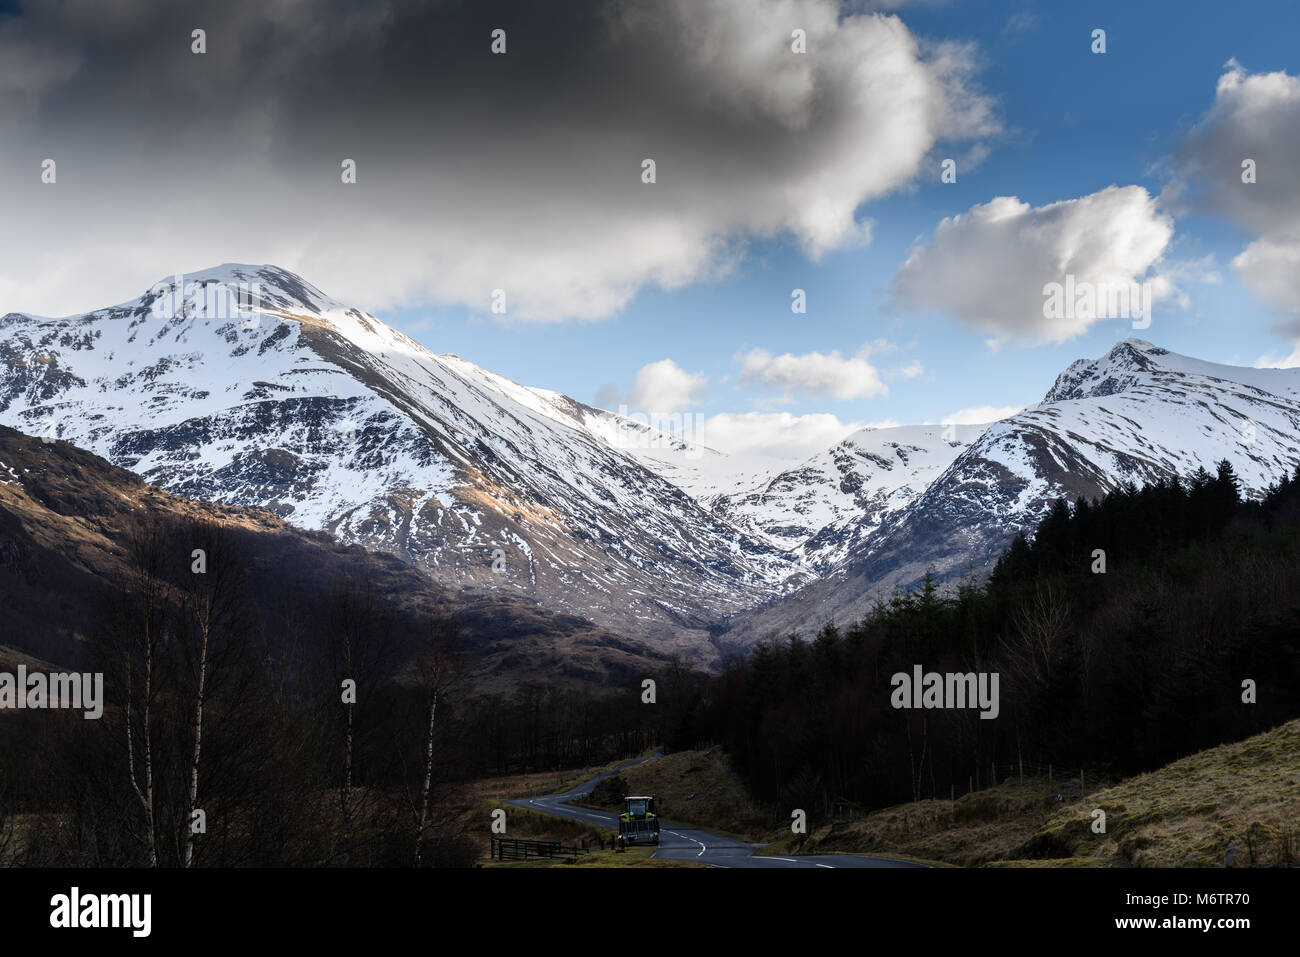 Snow on the Mamores mountains on a cloudy winter day. - Stock Image